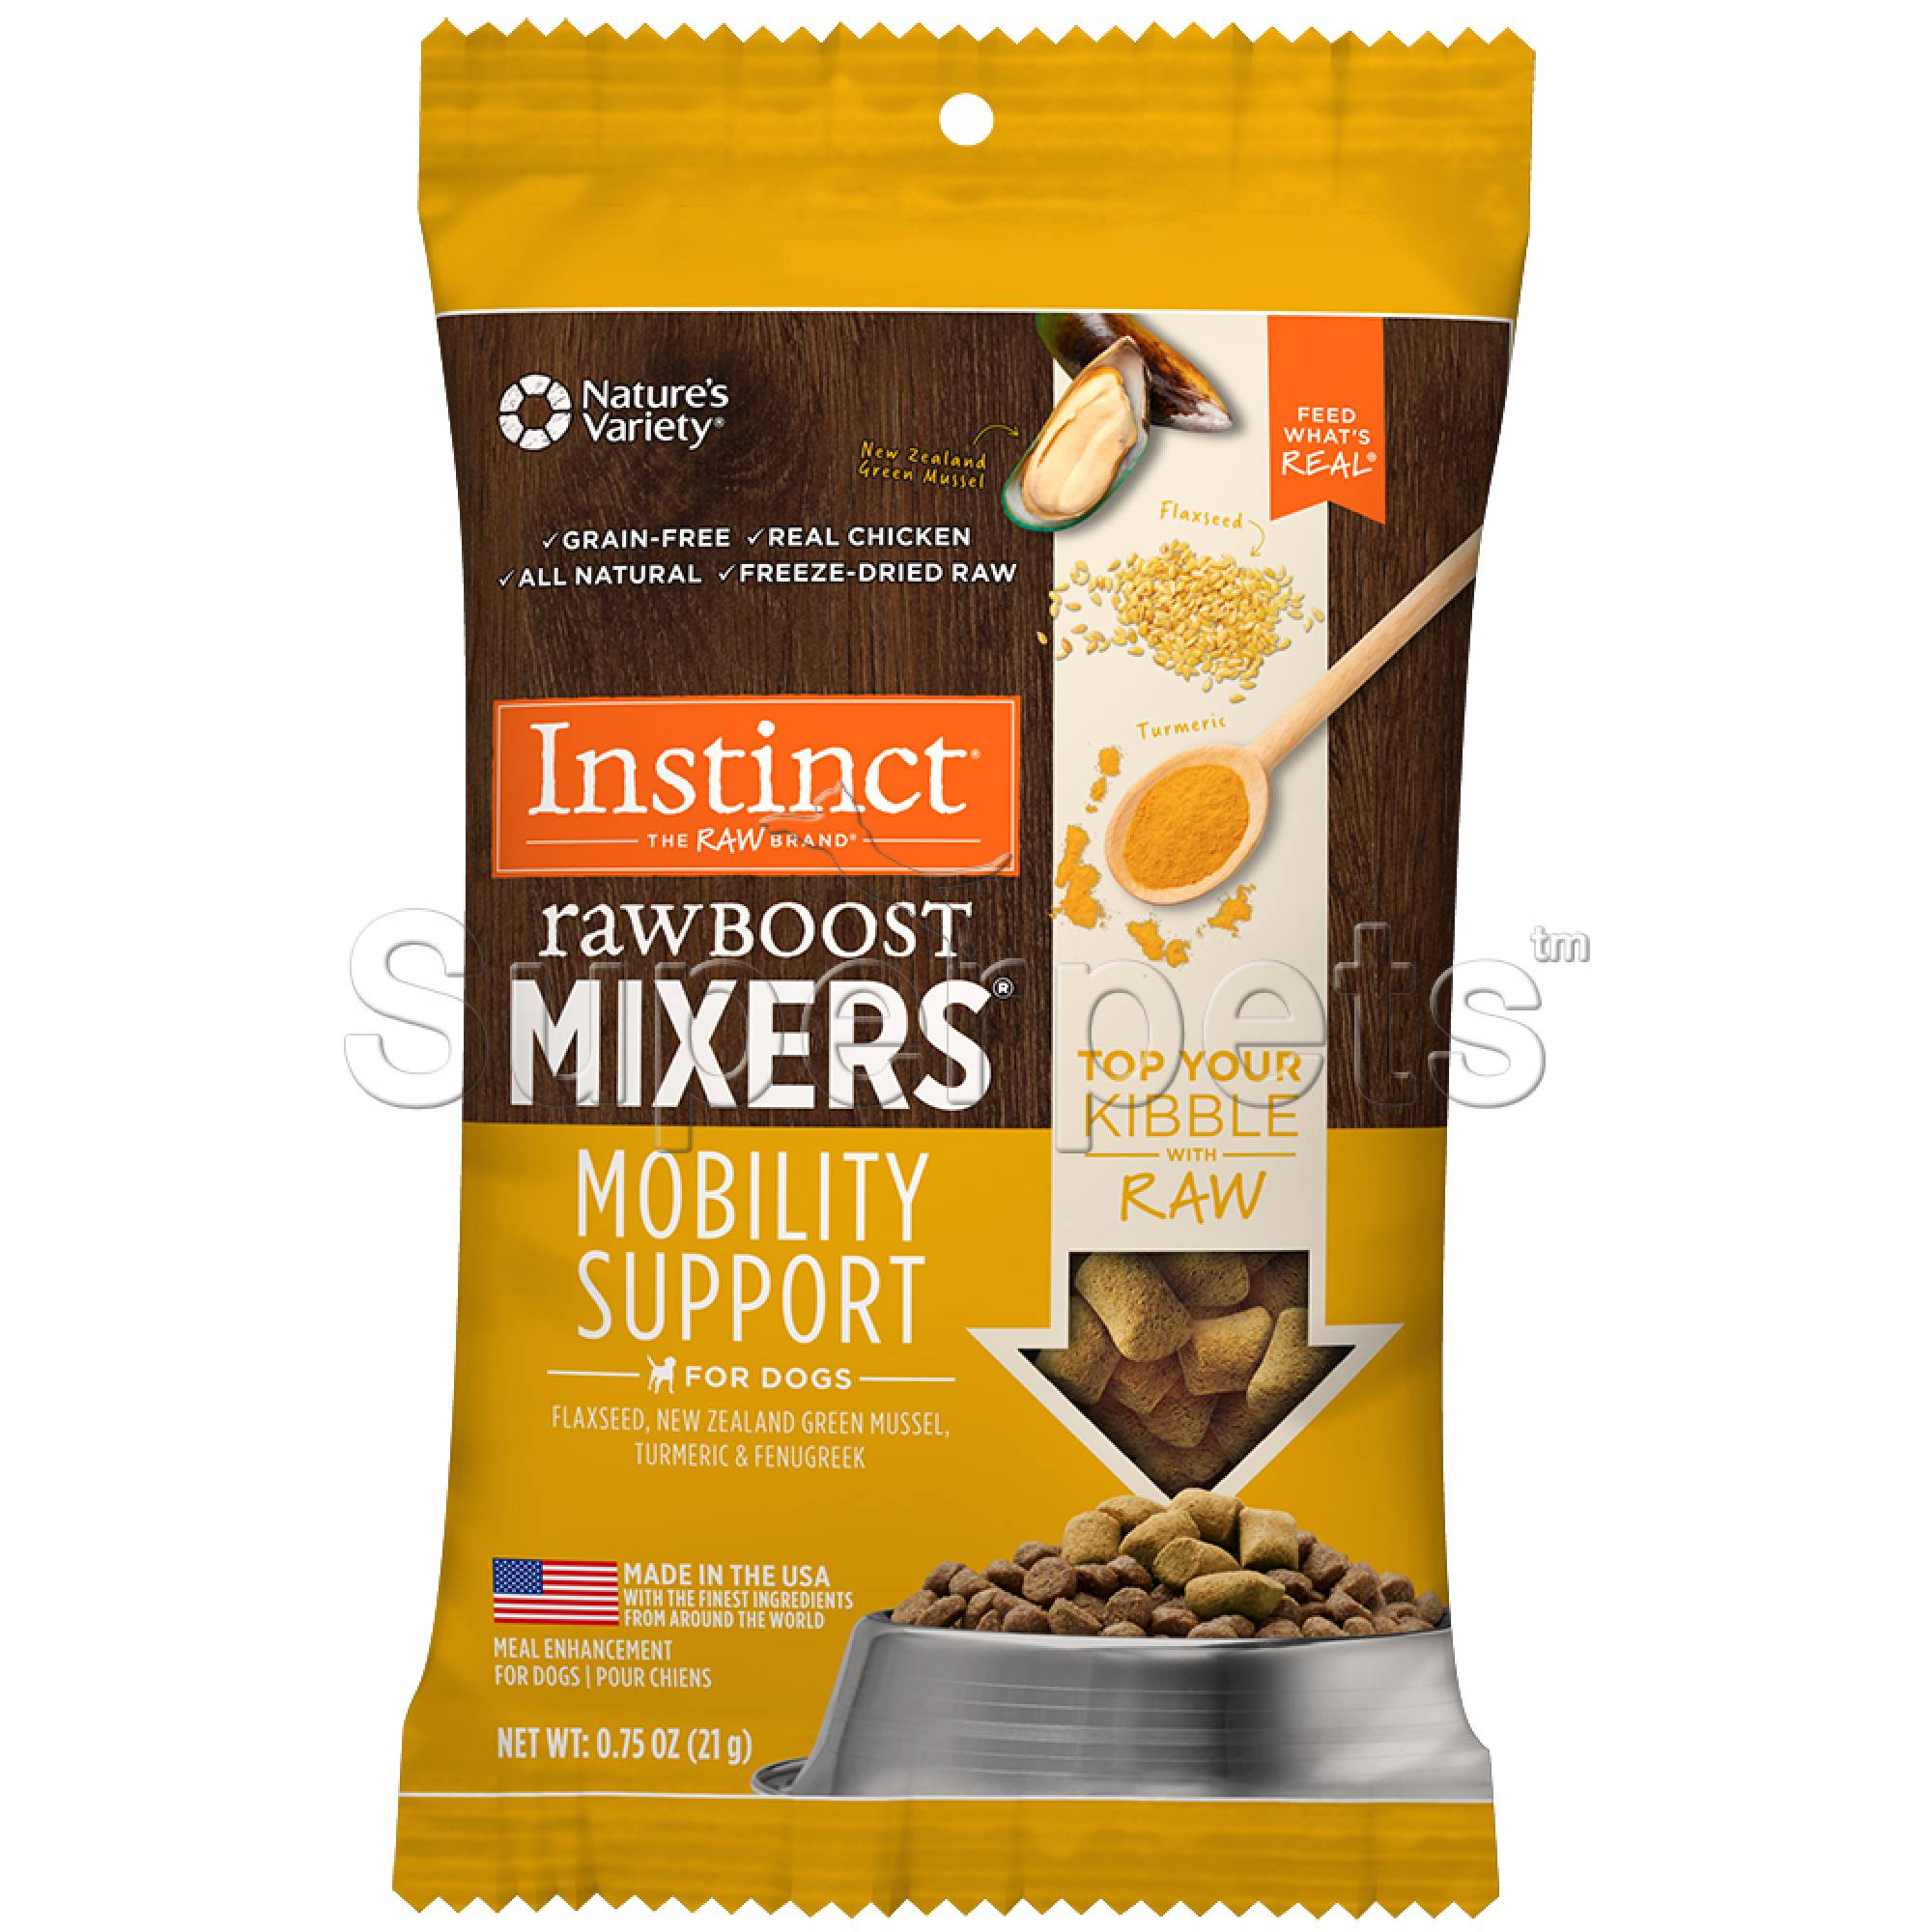 Instinct - Dog Freeze-Dried Raw Boost Mixers Grain-Free Mobility Support 0.75oz (21g)